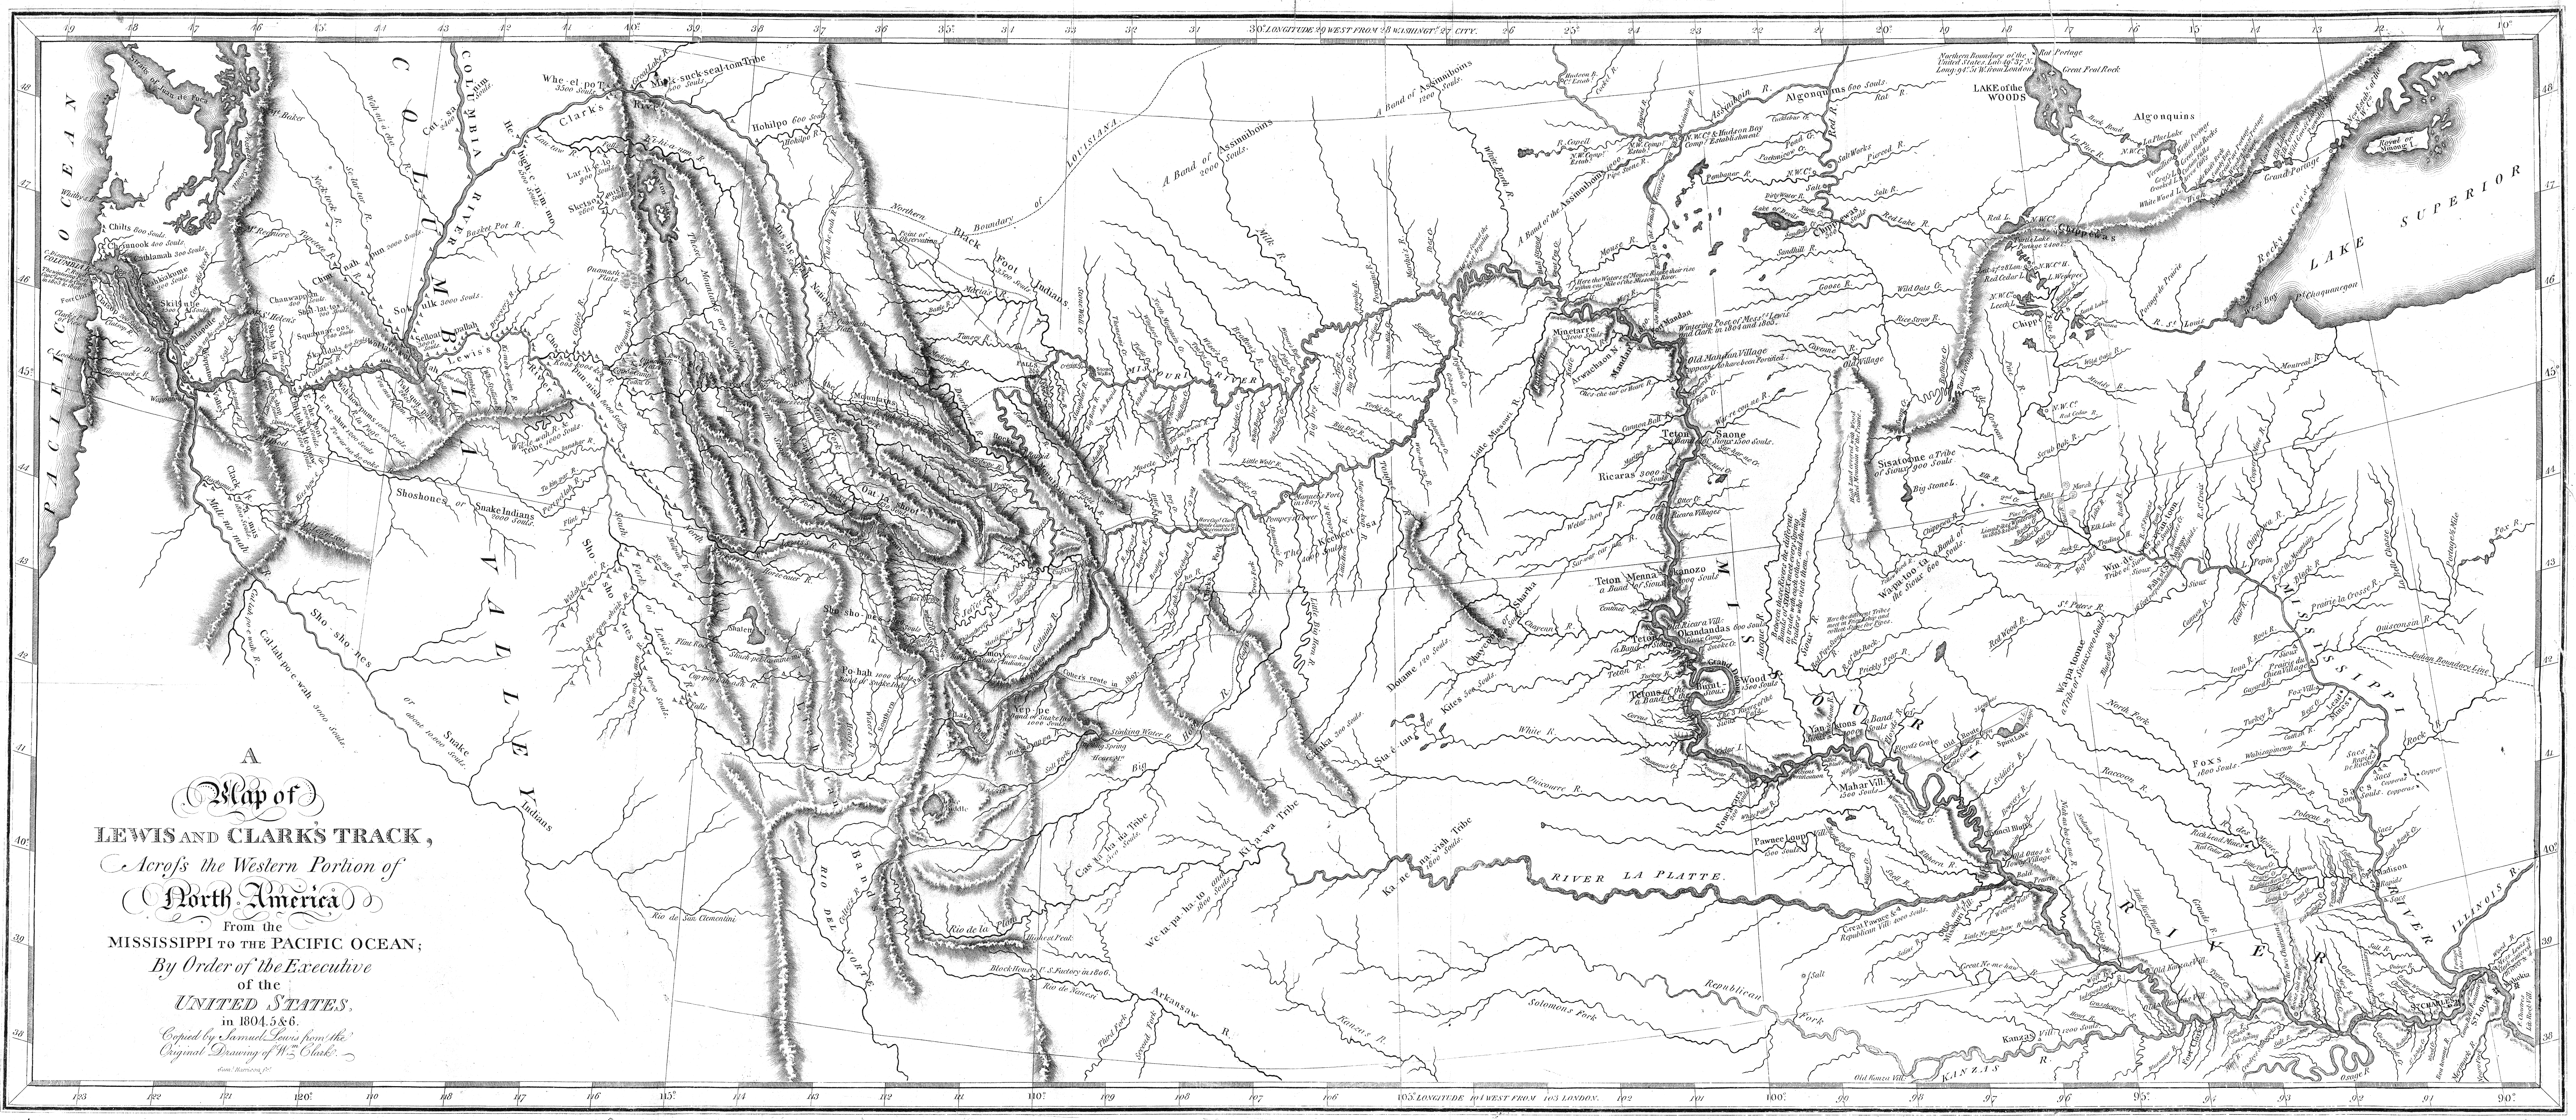 Map Of America Lewis And Clark.File Map Of Lewis And Clark S Track Across The Western Portion Of